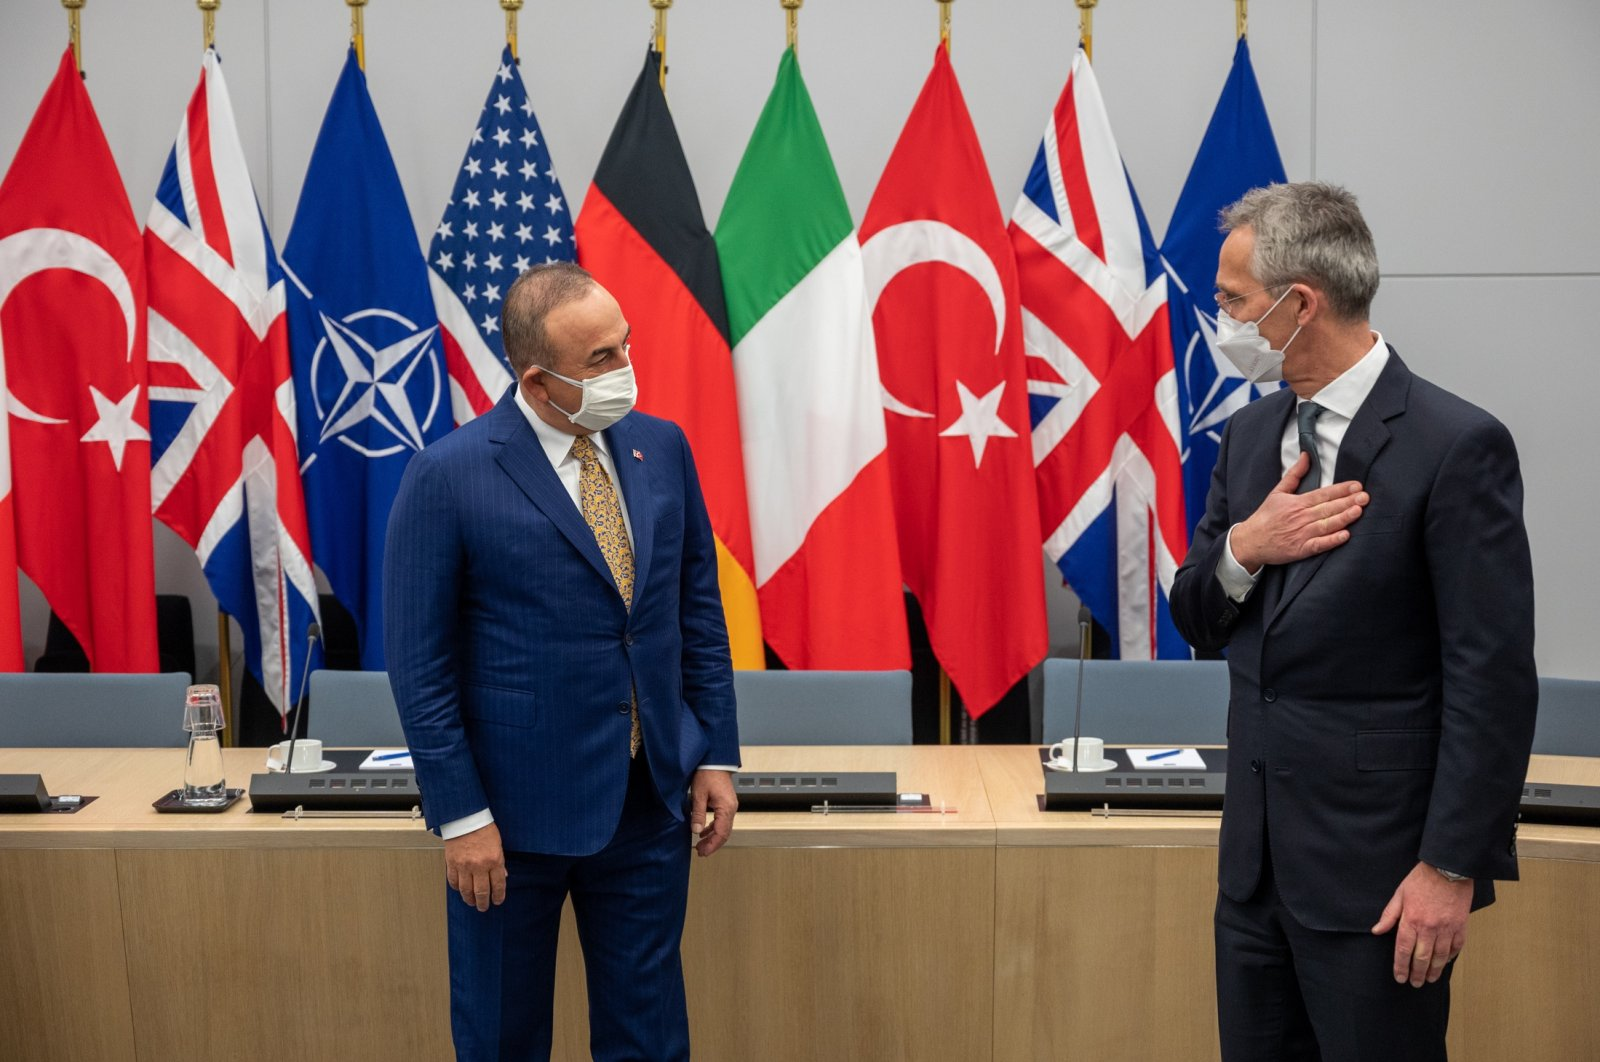 Foreign Minister Mevlüt Çavuşoğlu (R) and NATO chief Jens Stoltenberg greet each other on the sidelines of a NATO Council meeting on Afghanistan in Brussels, Belgium, Apr. 14, 2021. (AA Photo)